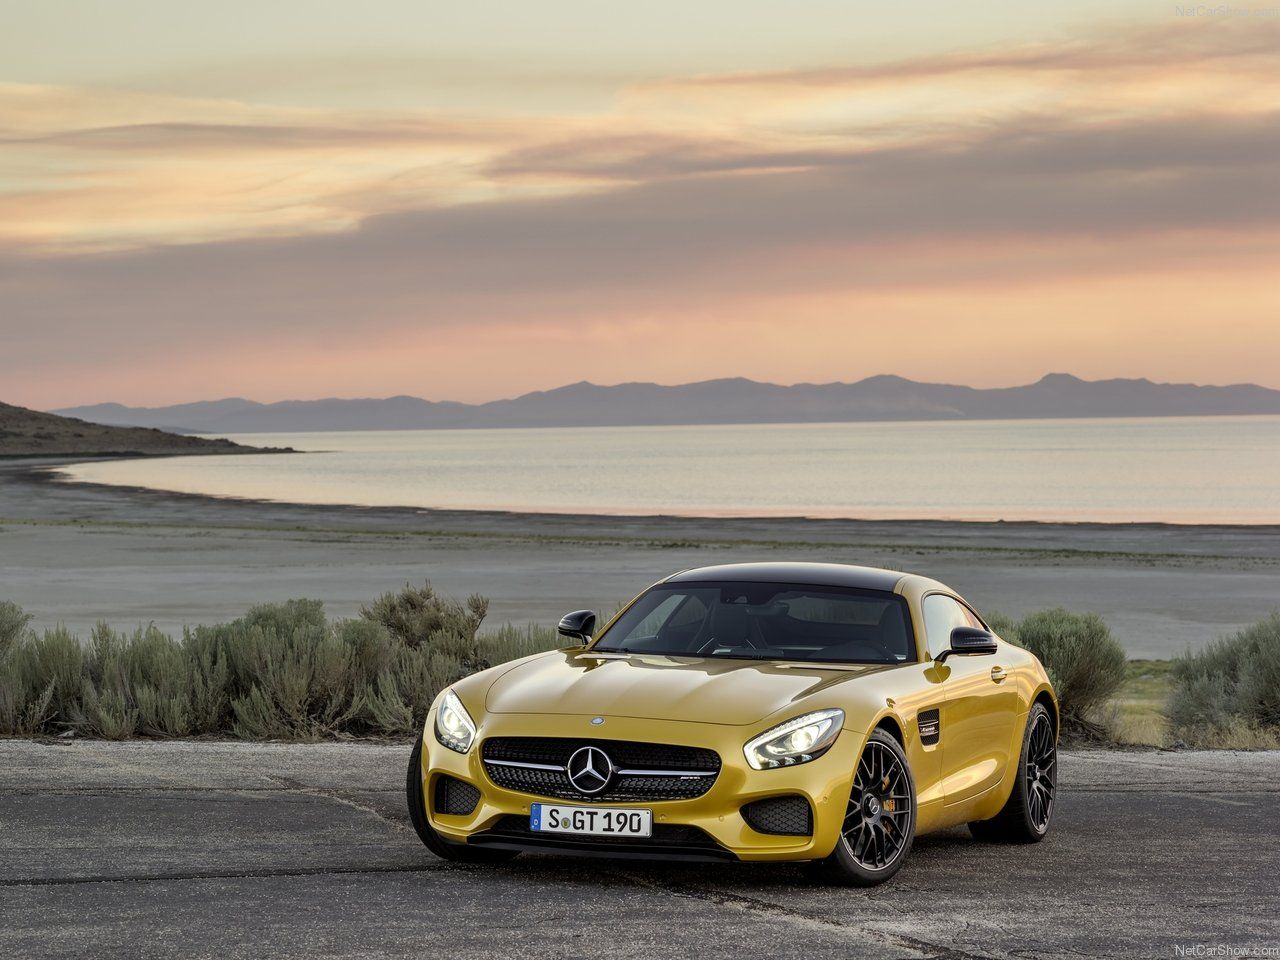 2016 Mercedes Benz Amg Gt Yellow Http Car Pictures Info 2016 Mercedes Benz Amg Gt Yellow Mercedes Benz Amg New Mercedes Amg Mercedes Amg Gt S